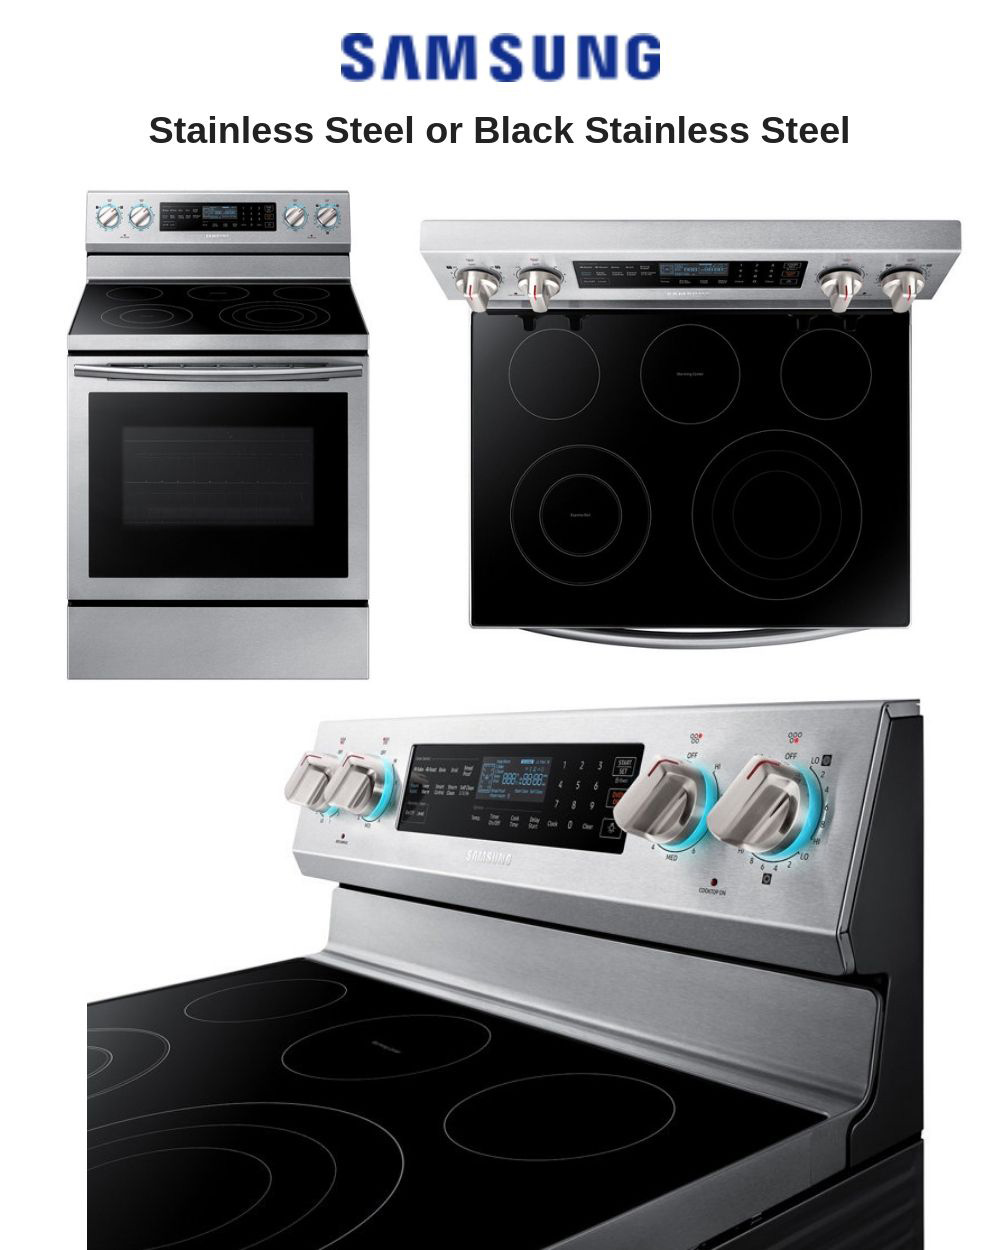 Best Samsung Electric Ranges for 2019 [An In-Depth Review]